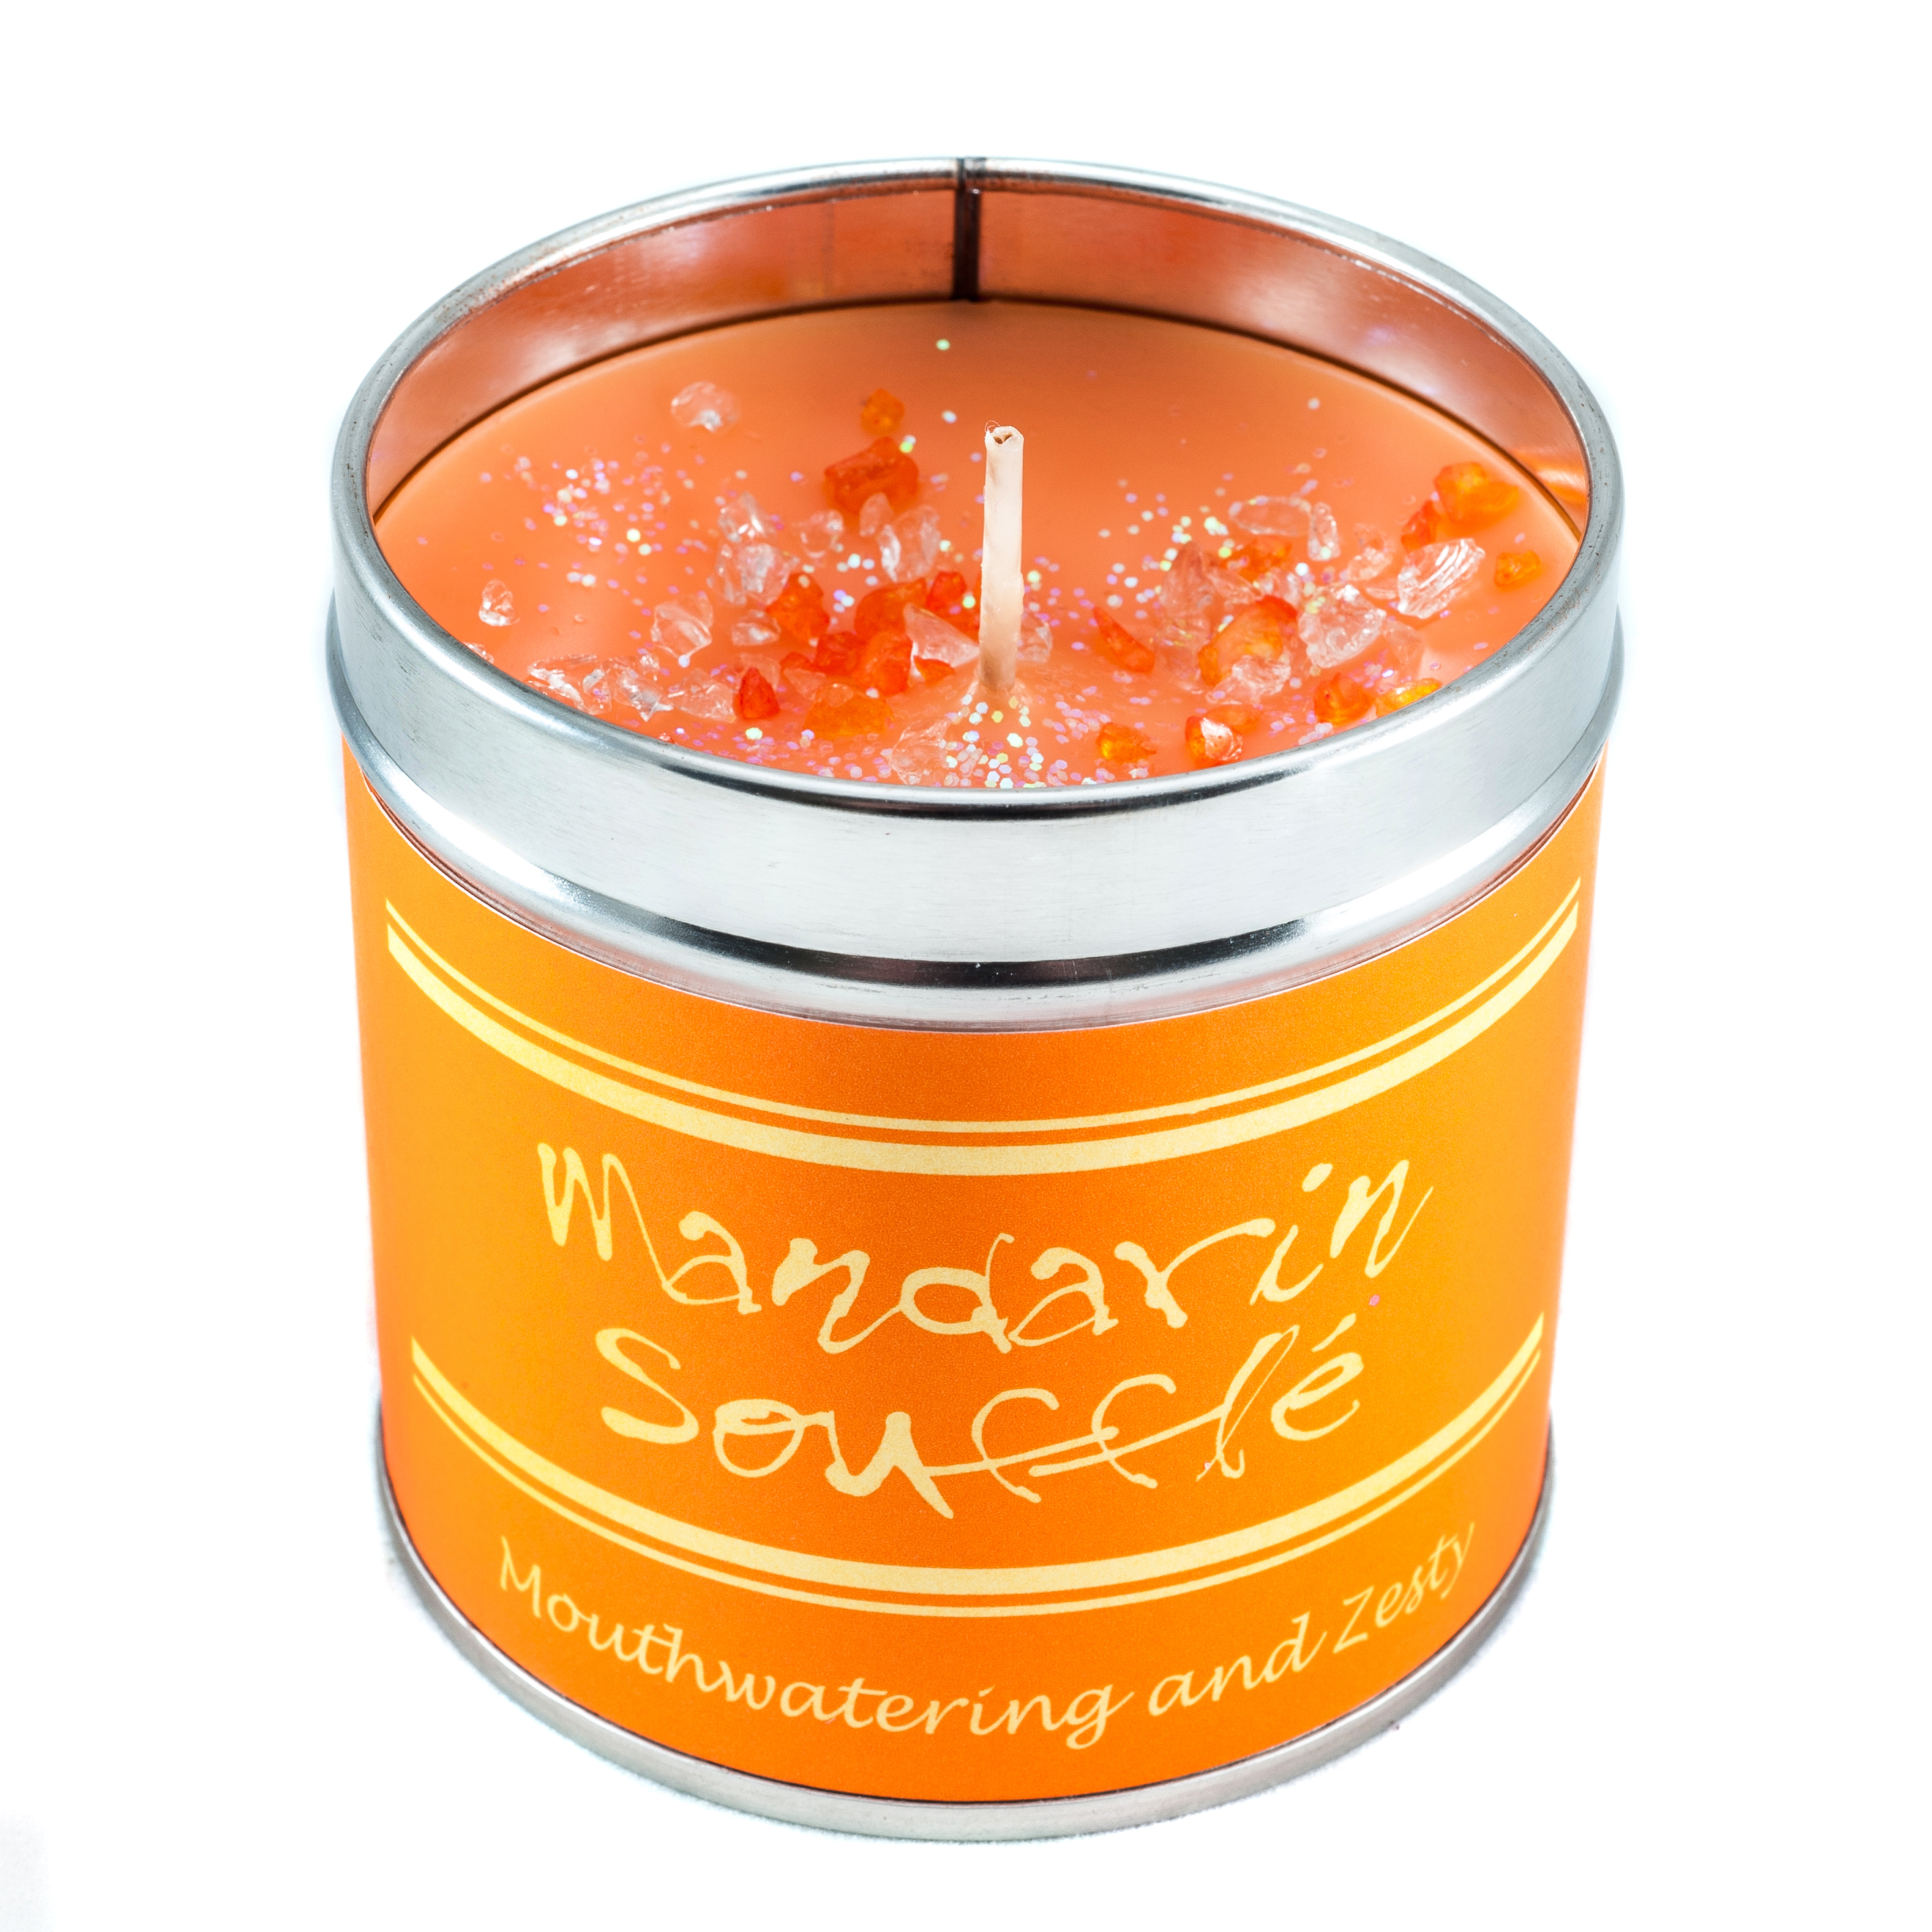 Scented candle tin mandarine souffle best kept secrets for Top selling candle fragrances